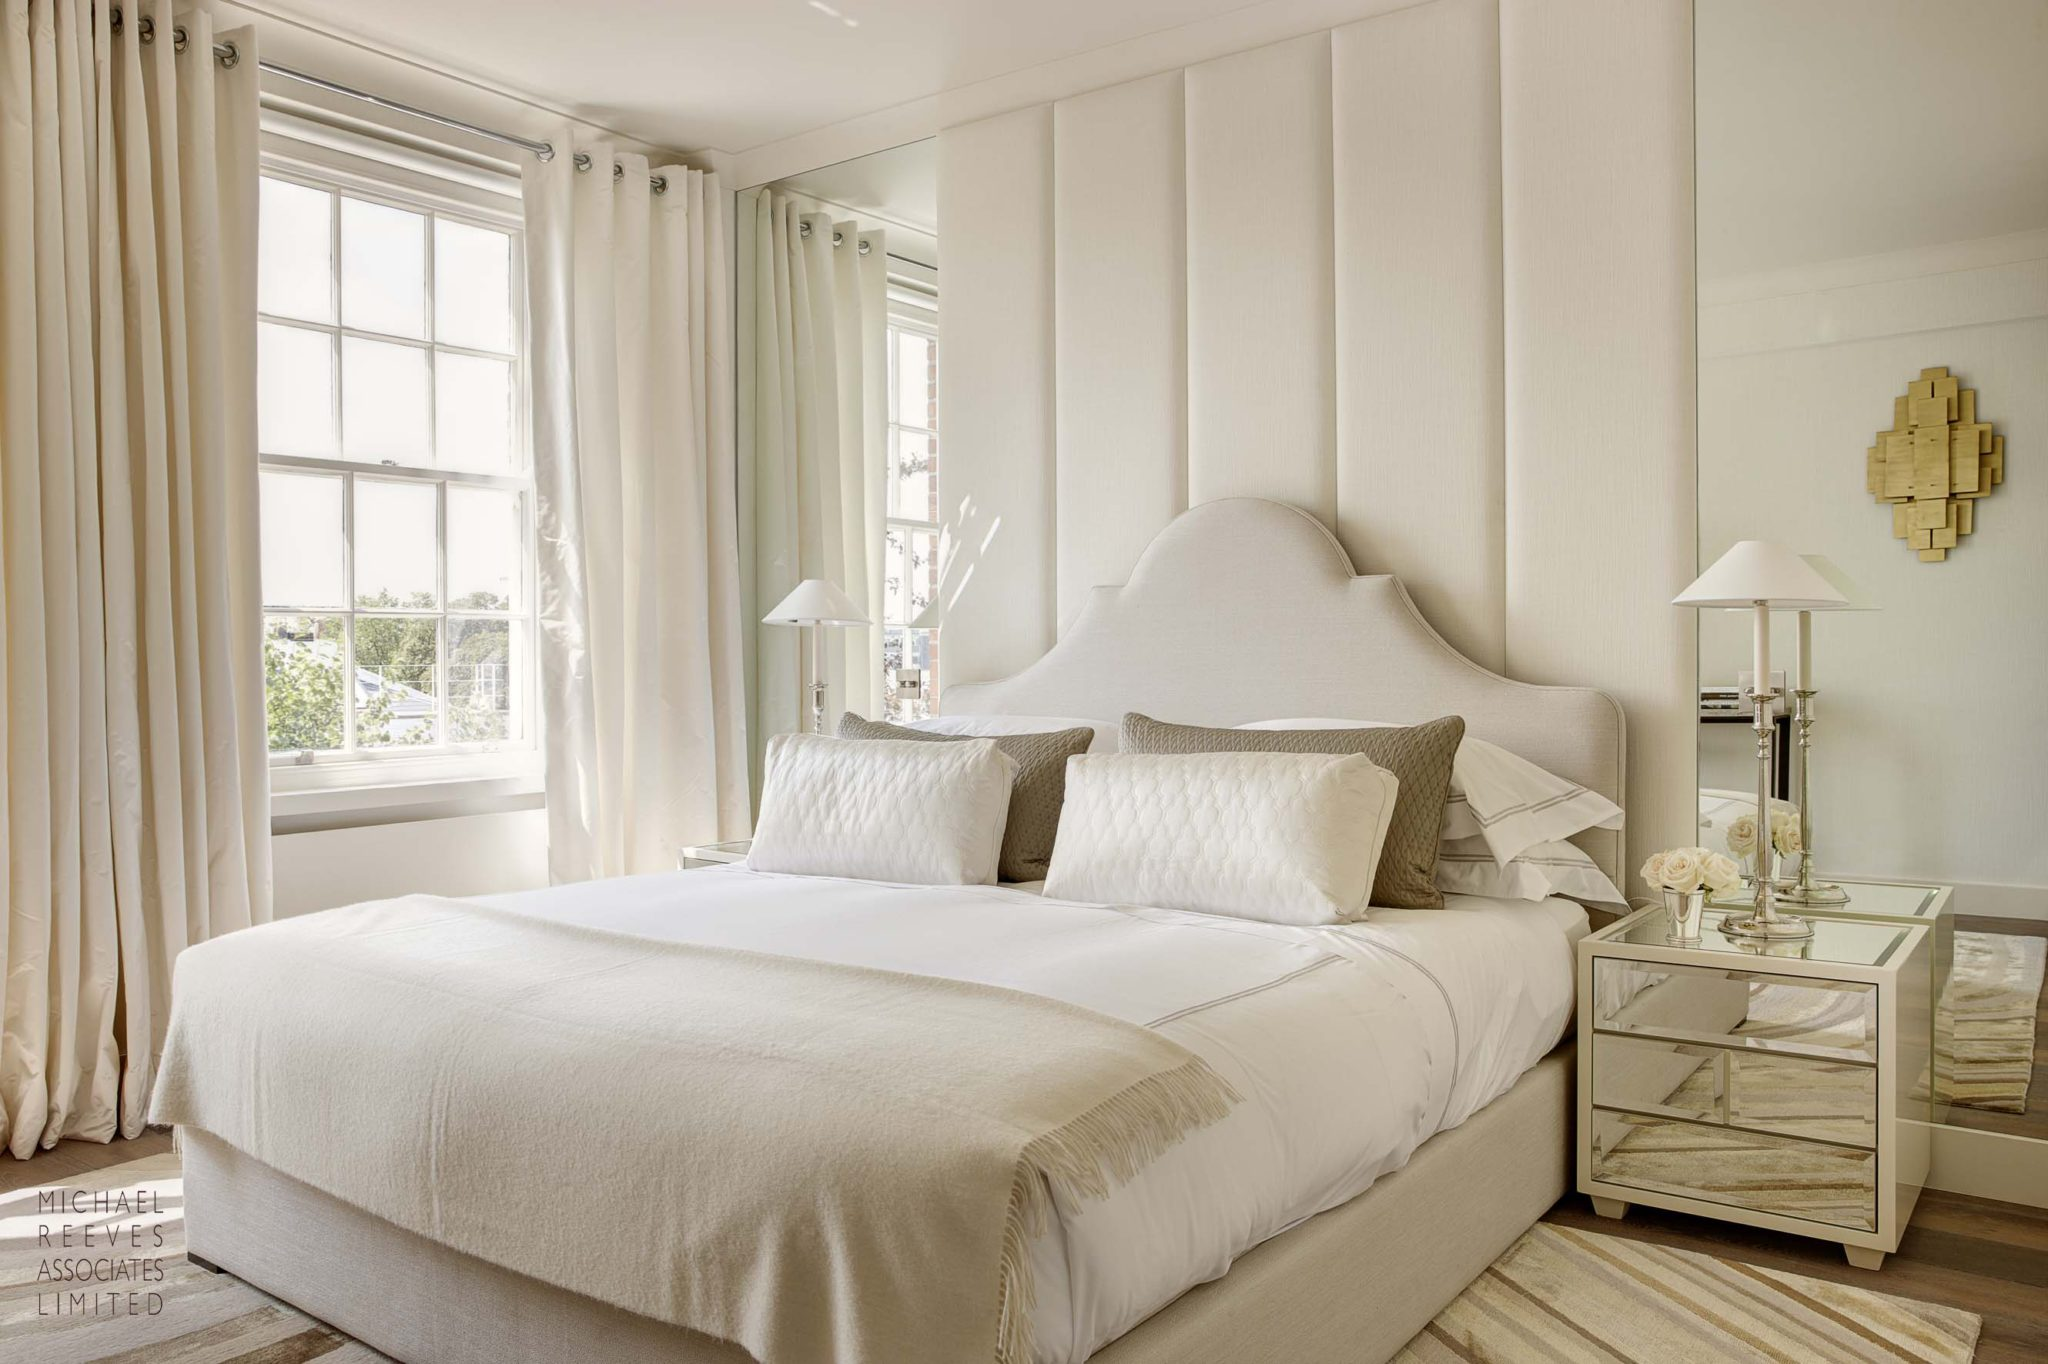 Notting Hill apartment guest bedroom by Michael Reeves Associates